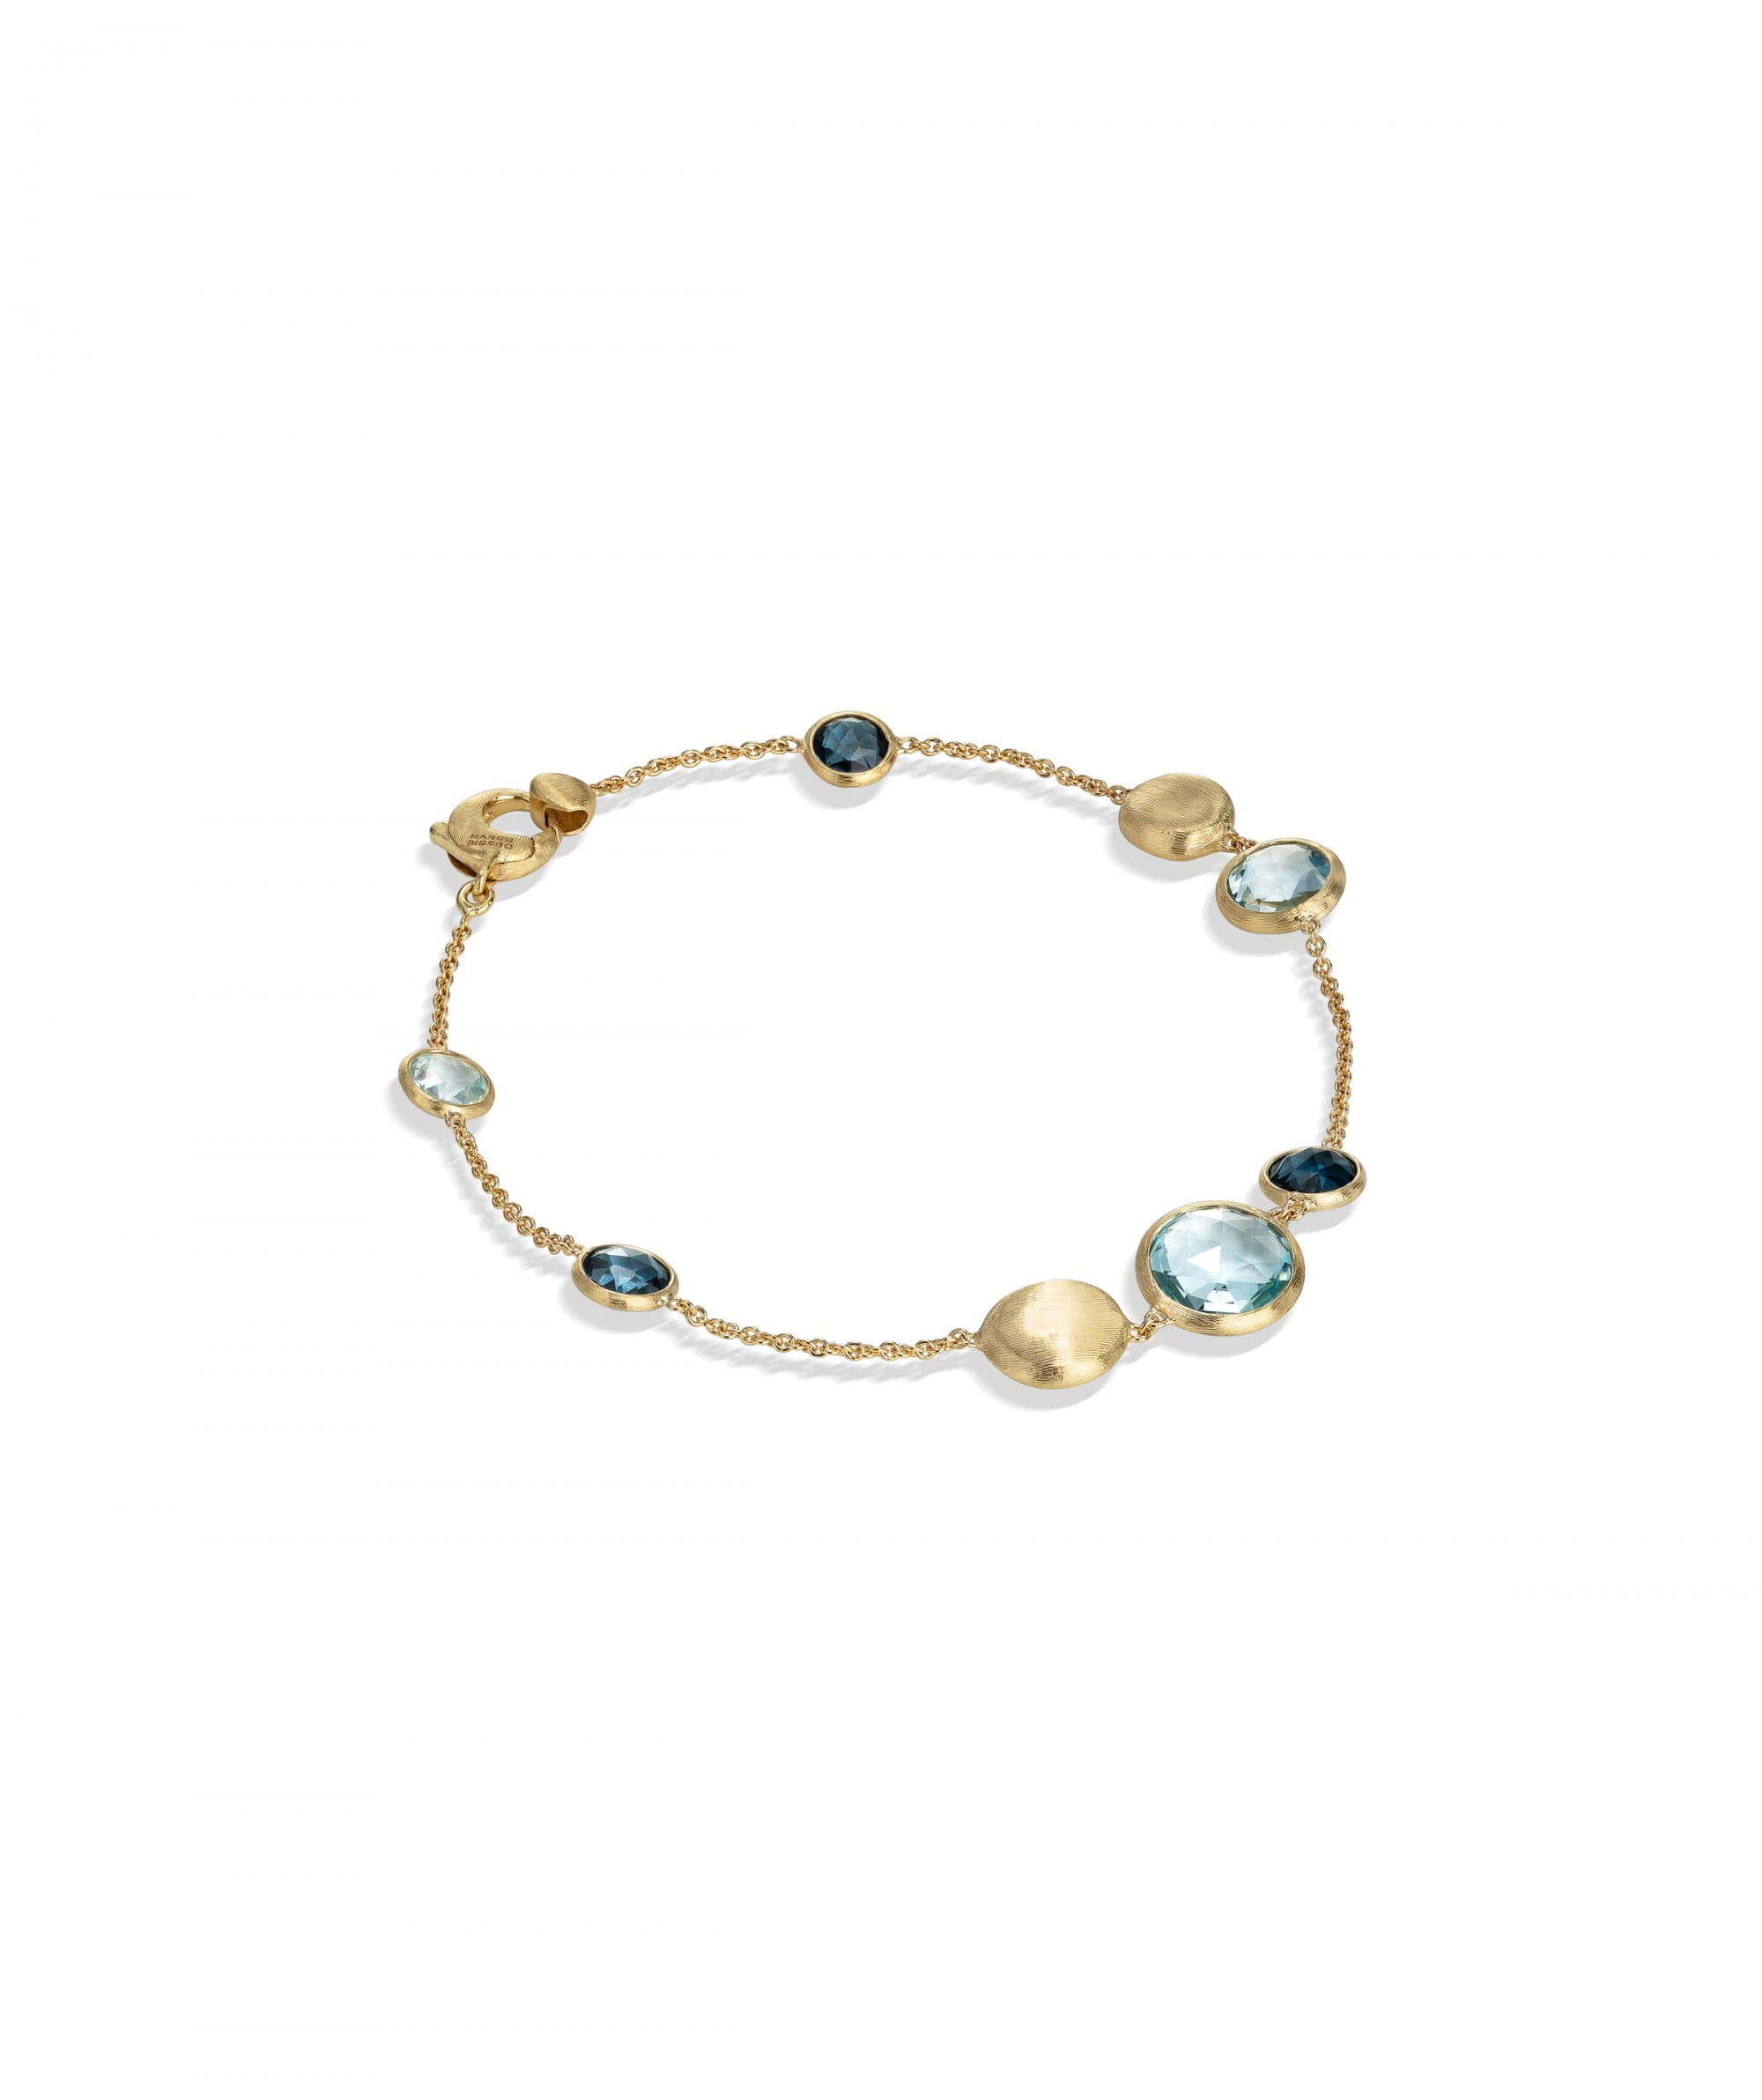 Jaipur Colour Bracelet in 18k Yellow Gold with Gemstones Mixed Blue